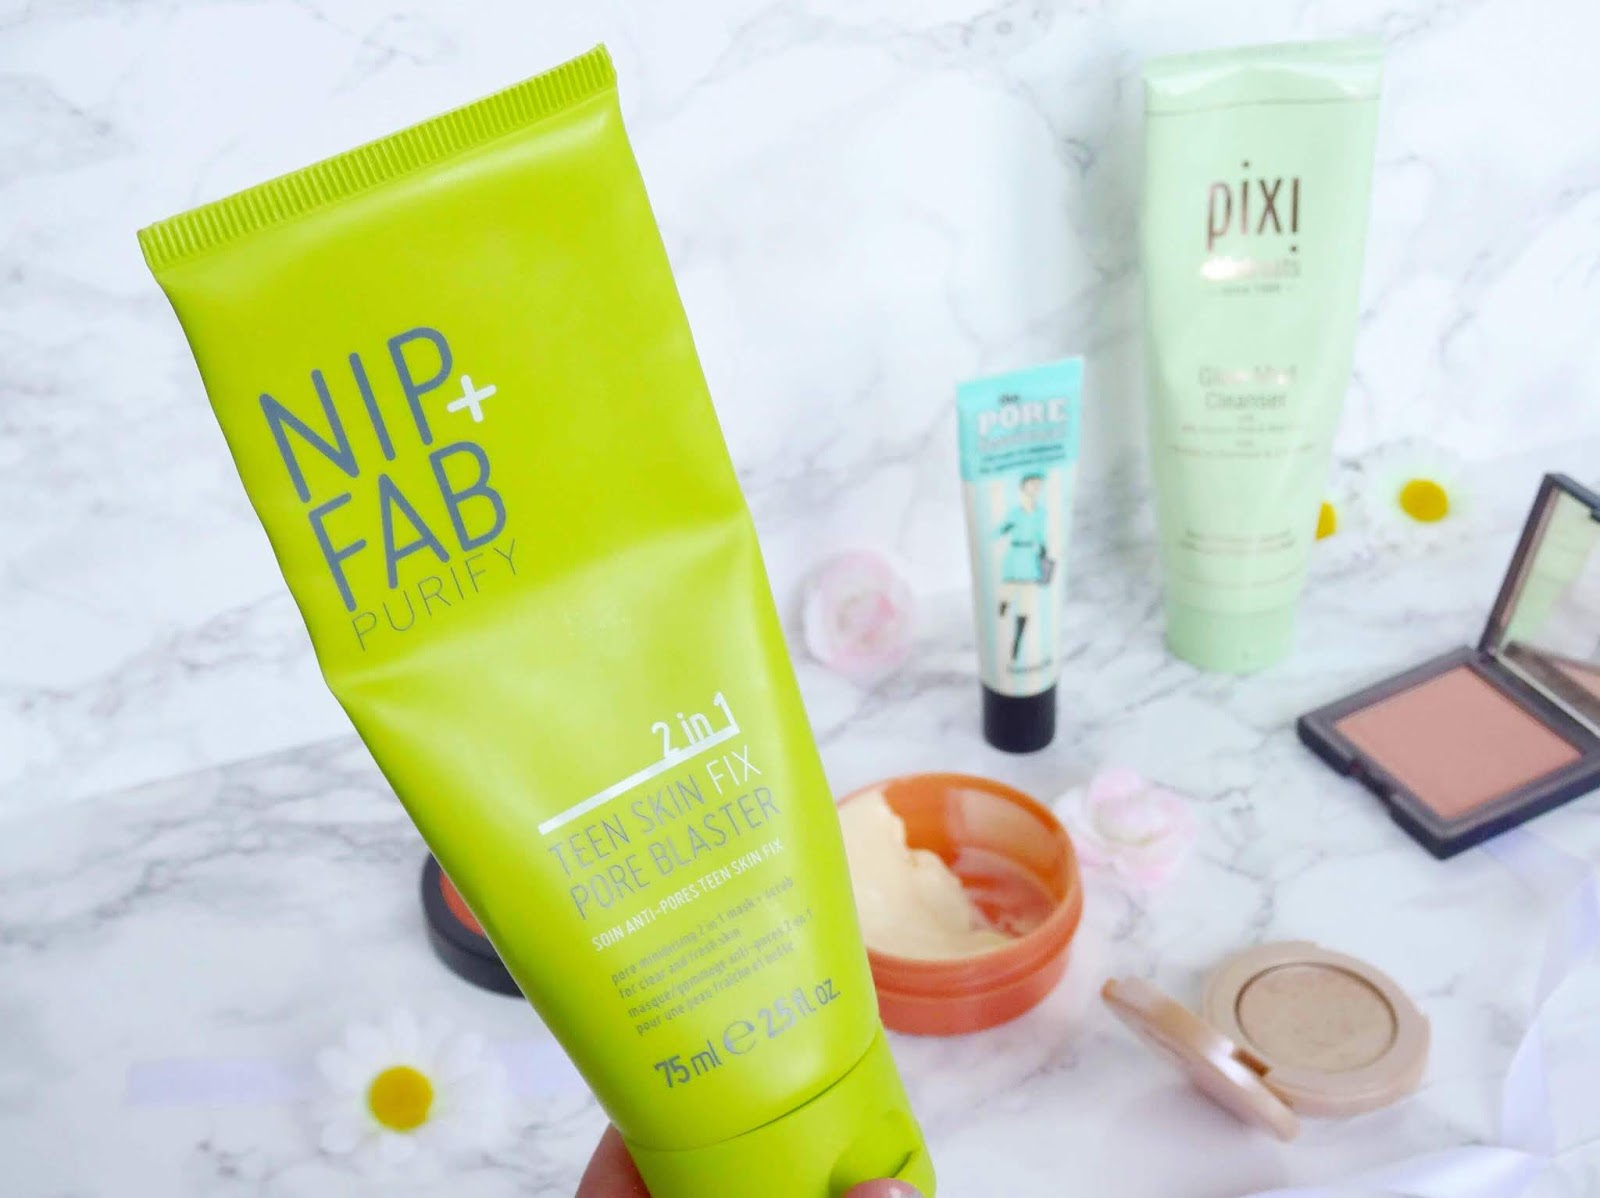 Nip+Fab 2 in 1 Teen Skin Fix Pore Blaster